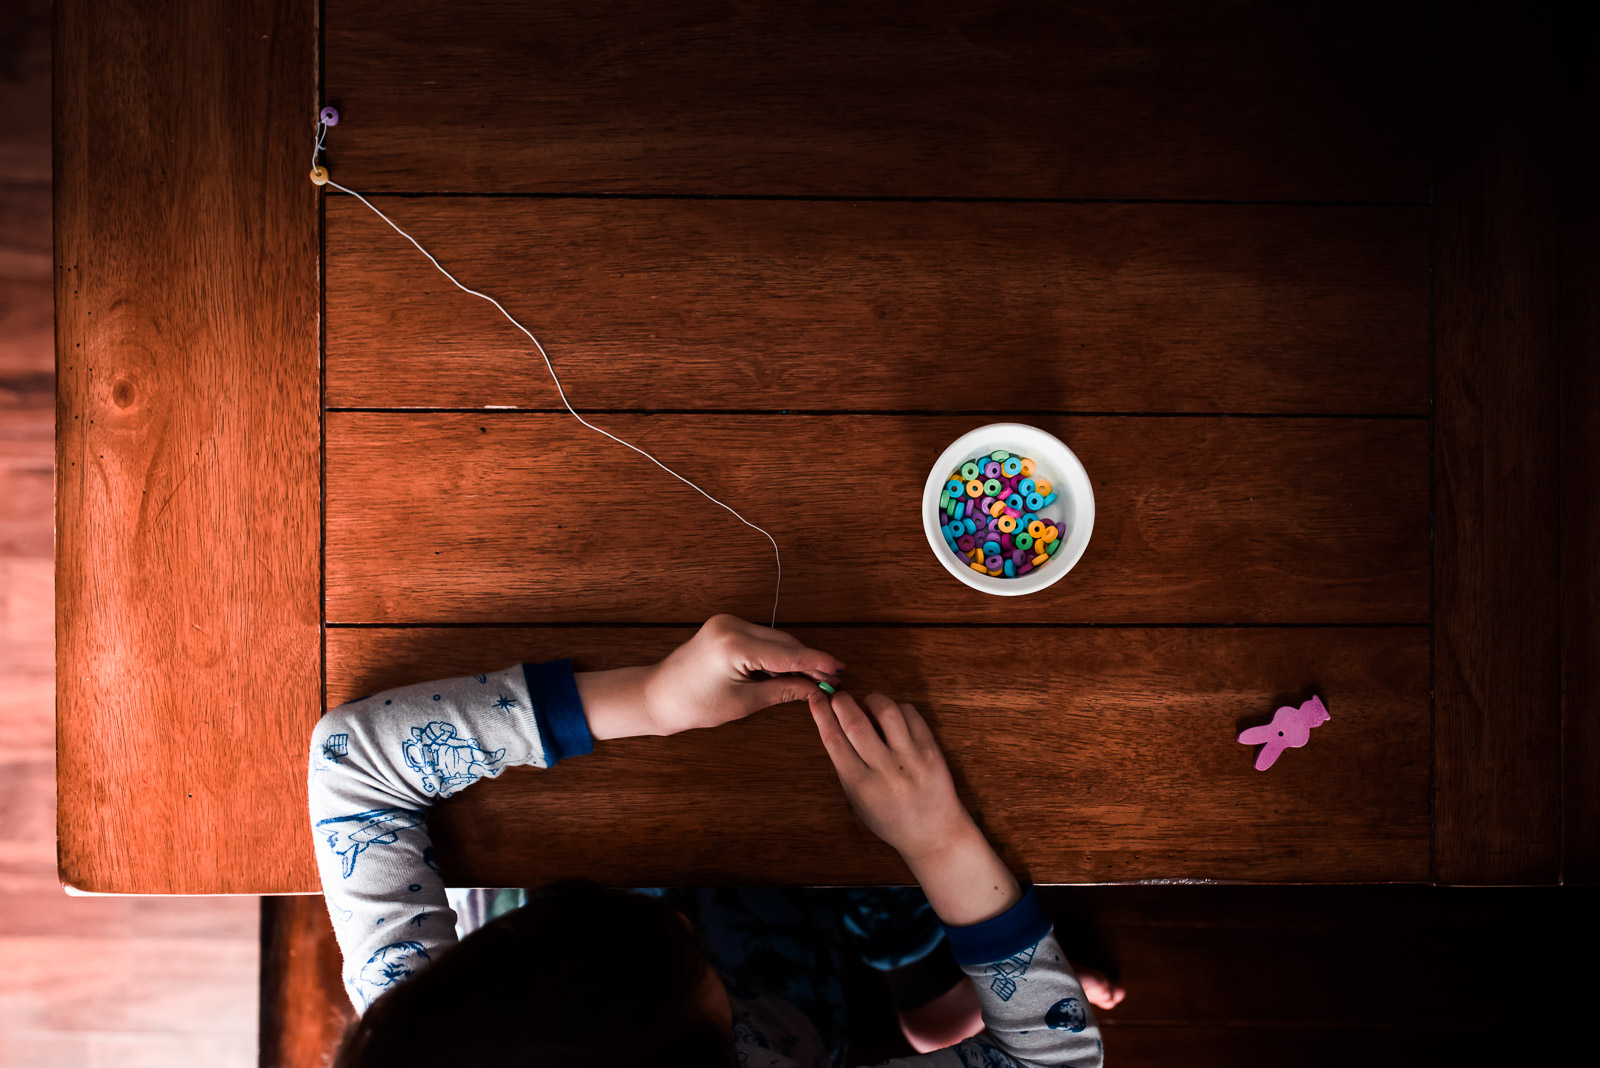 Photographing struggle - autistic child quietly at table